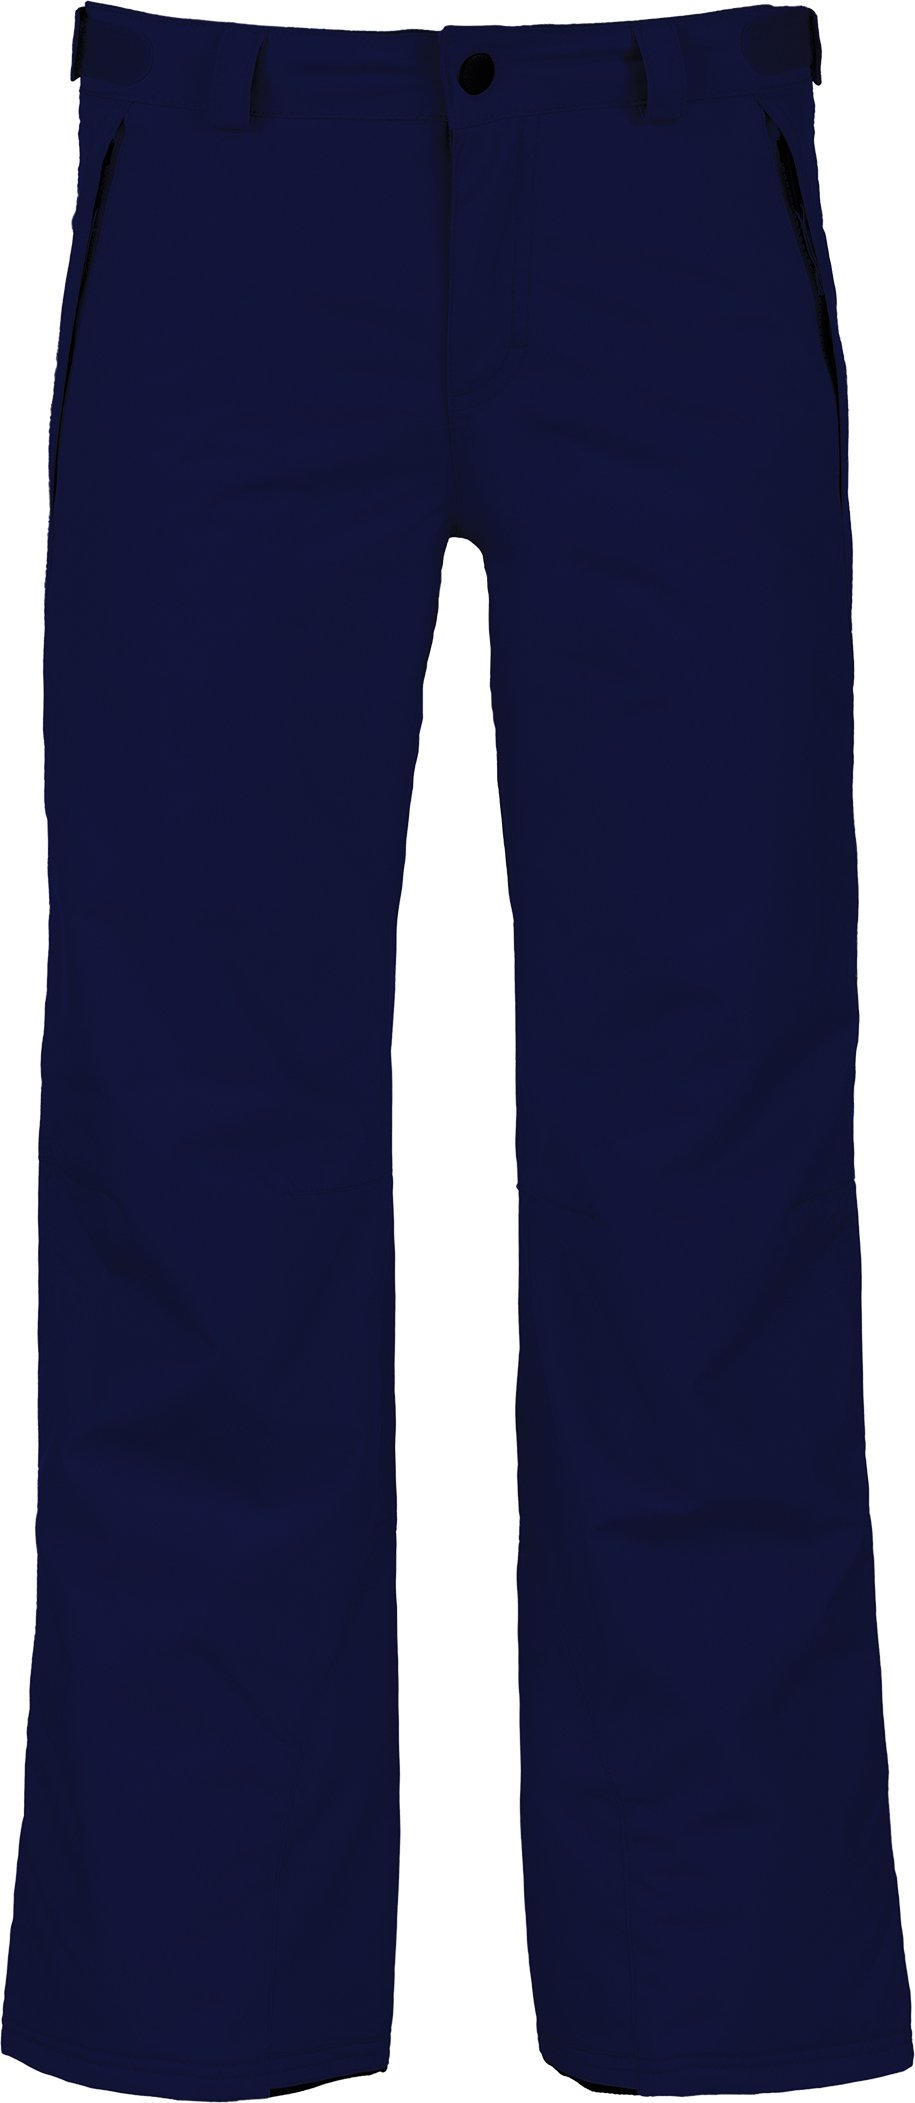 O'Neill Boys Anvil Pants, Ink Blue, Size 14